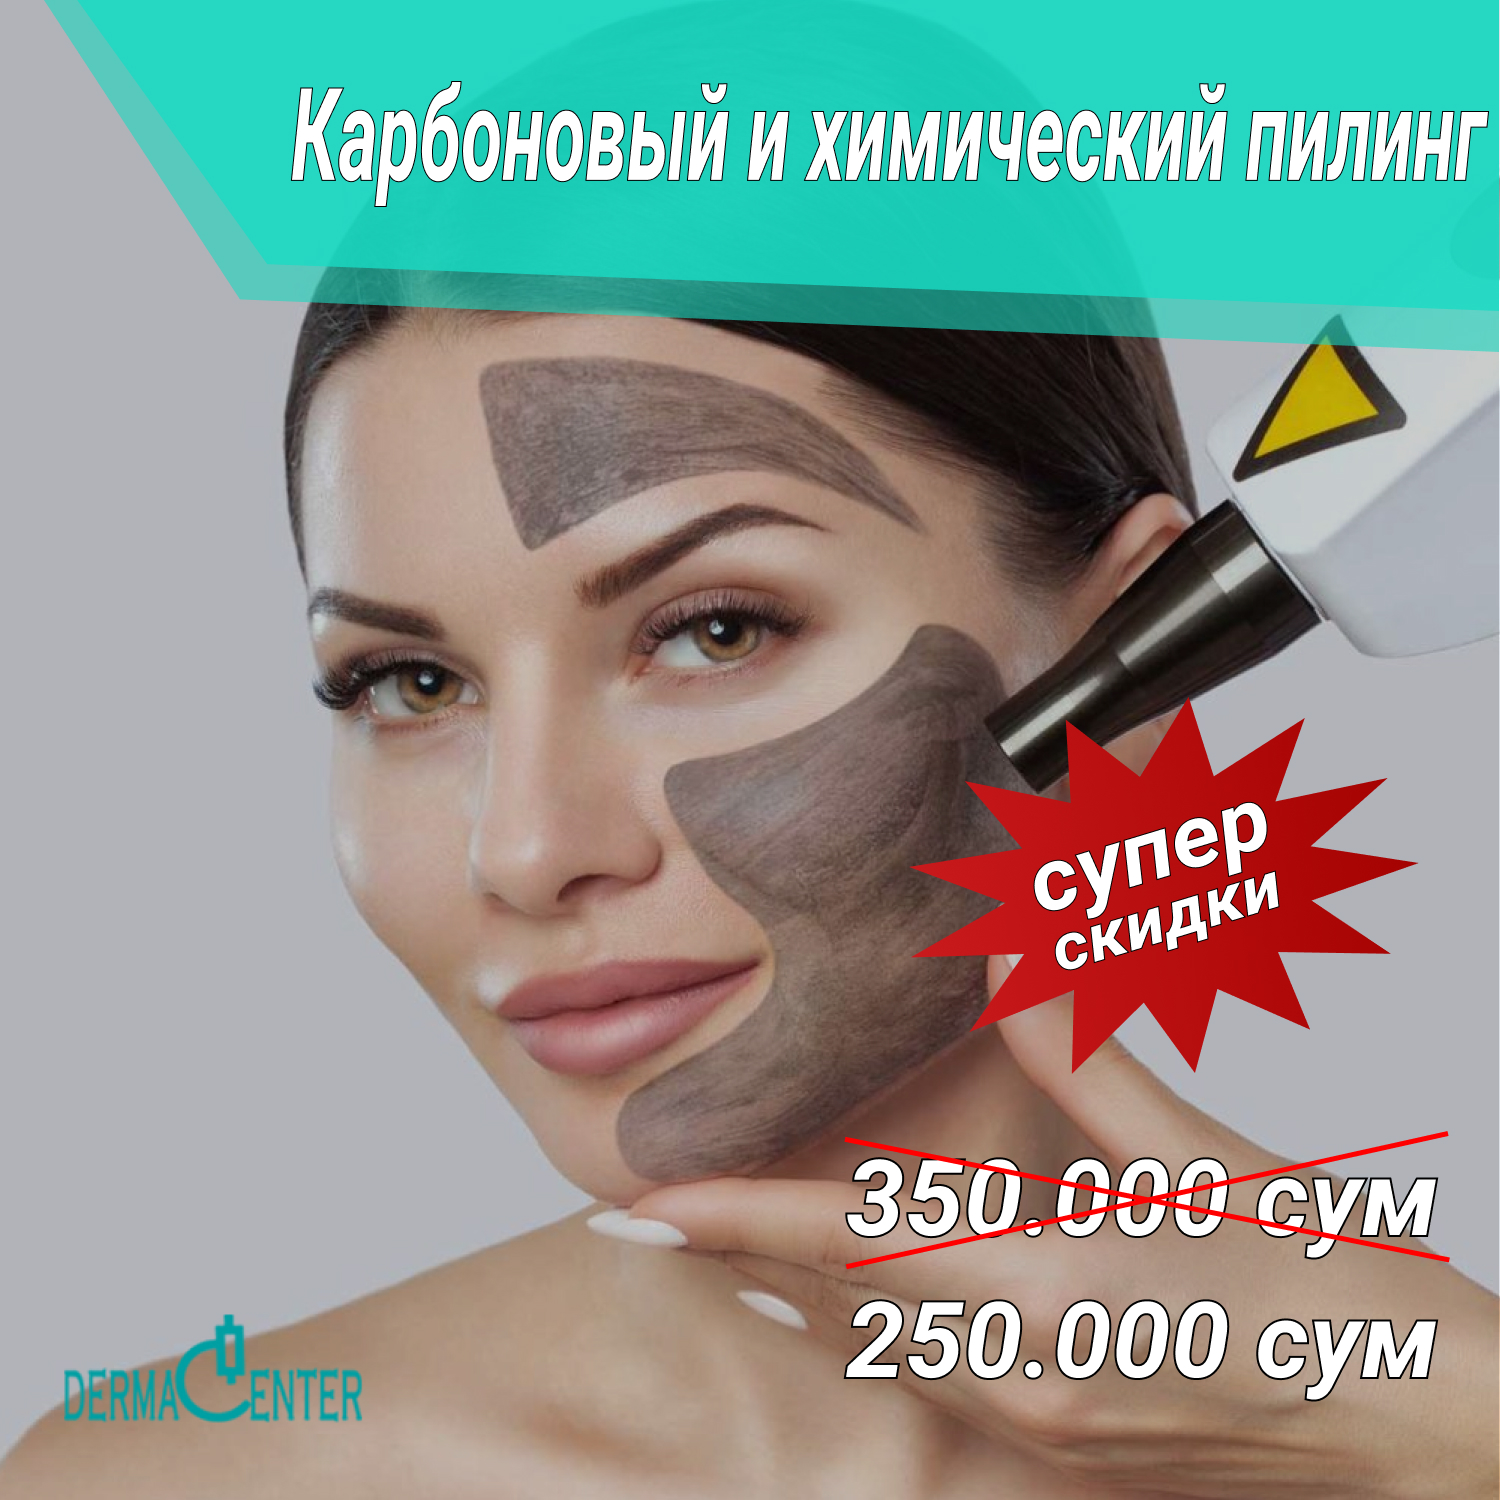 Chemical peelings in Tashkent